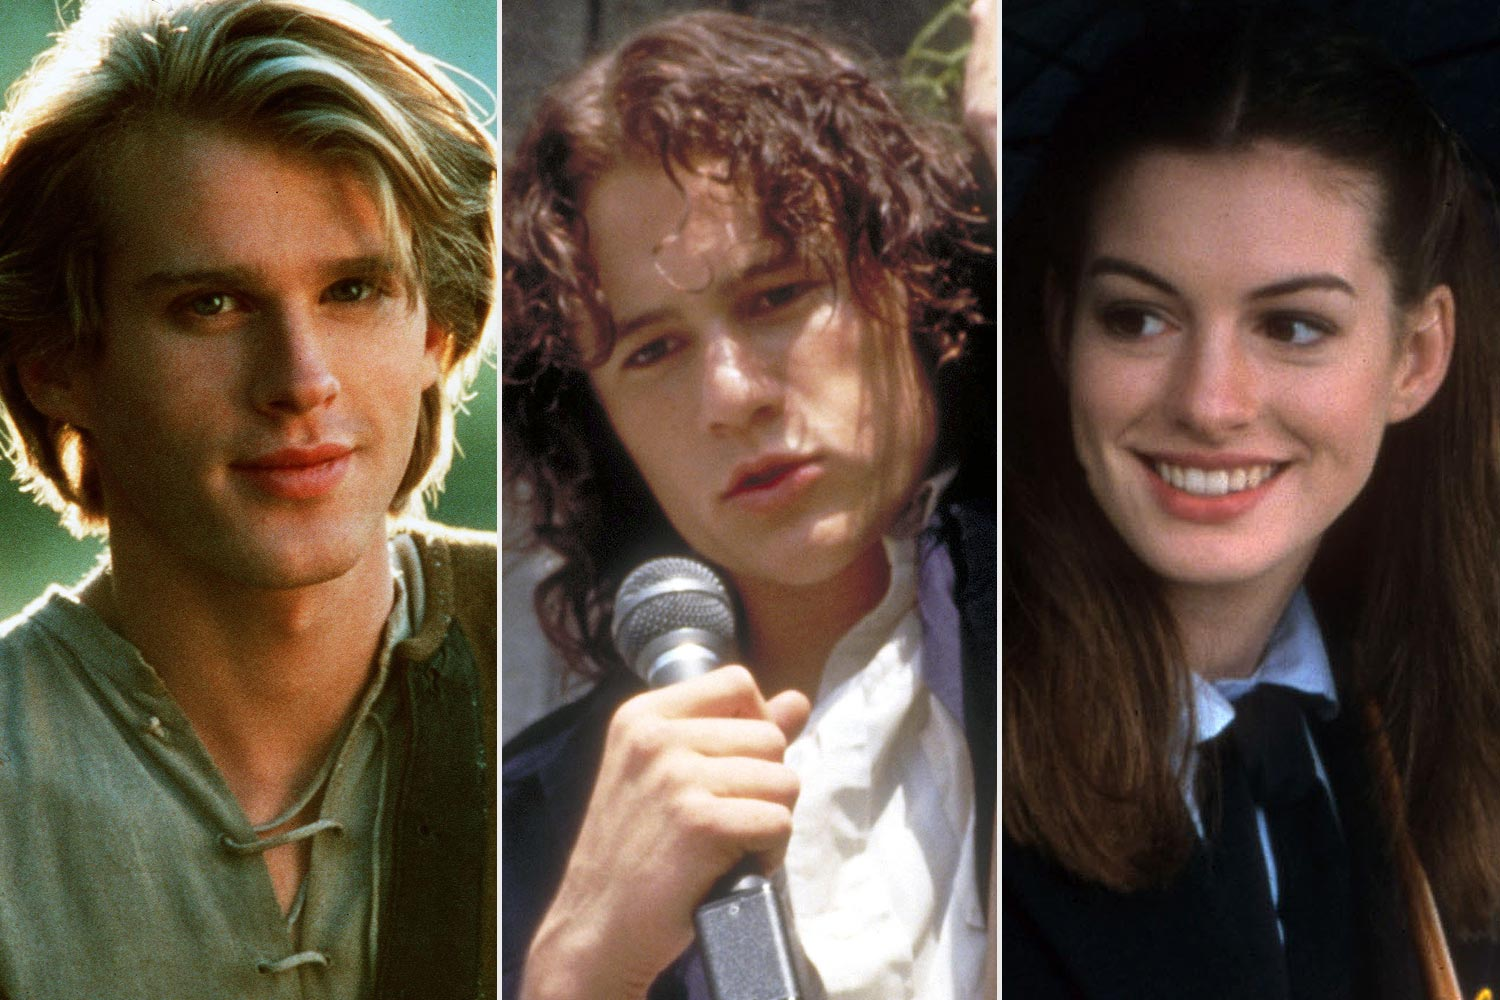 Princess Bride, 10 Things I Hate About You, Princess Diaries